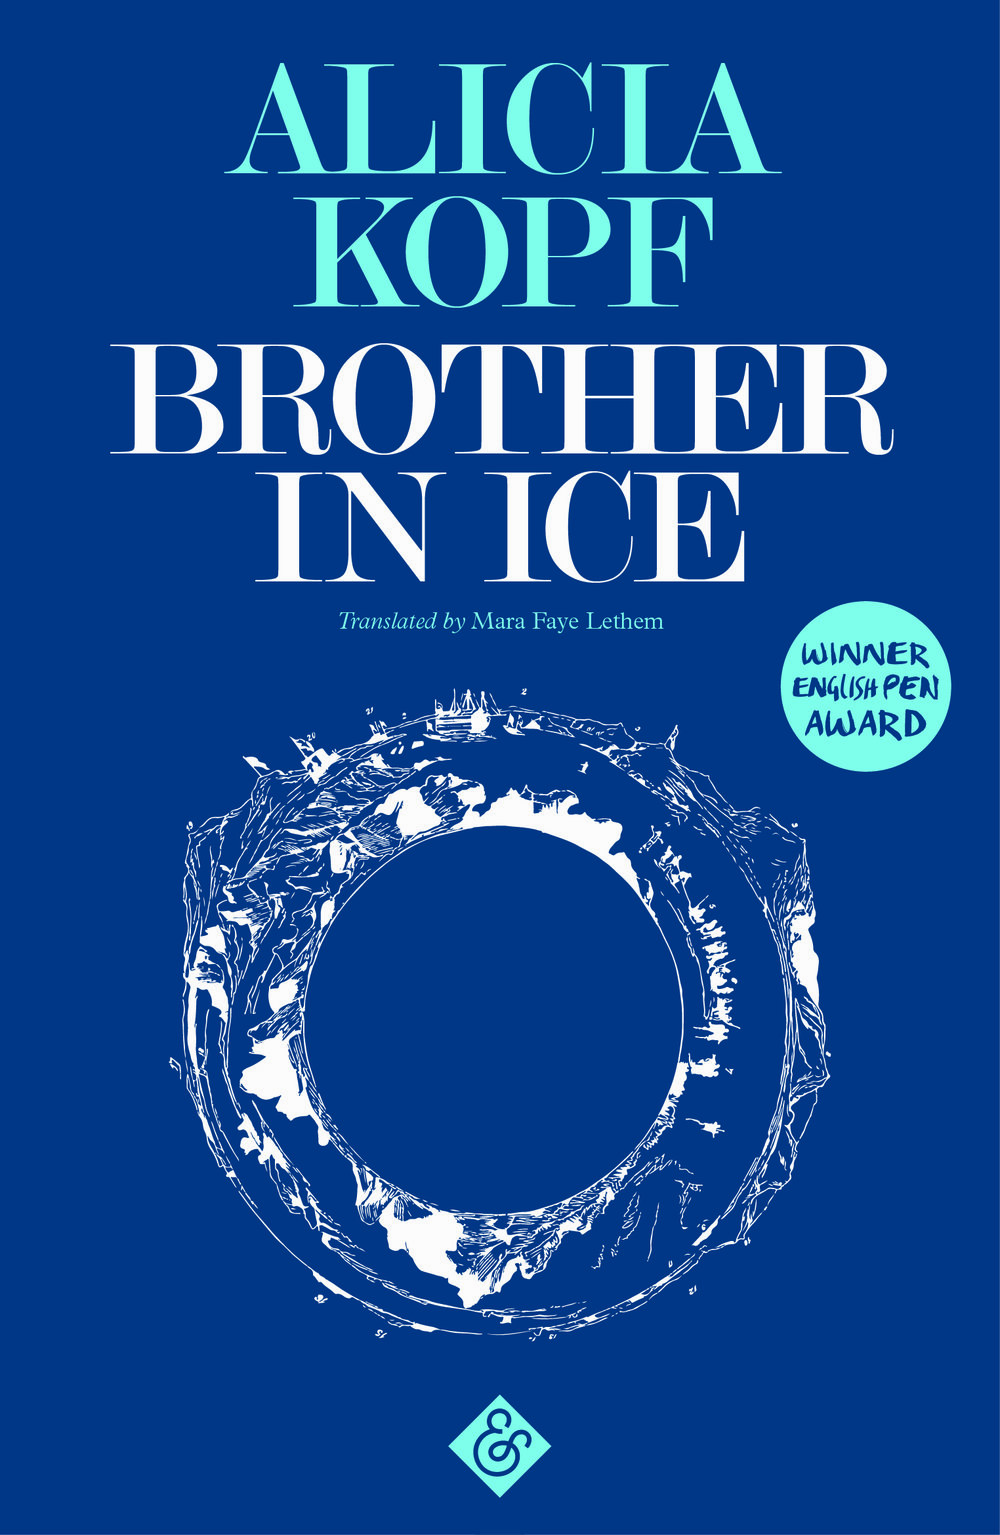 Brother-in-ice-CMYK.jpg